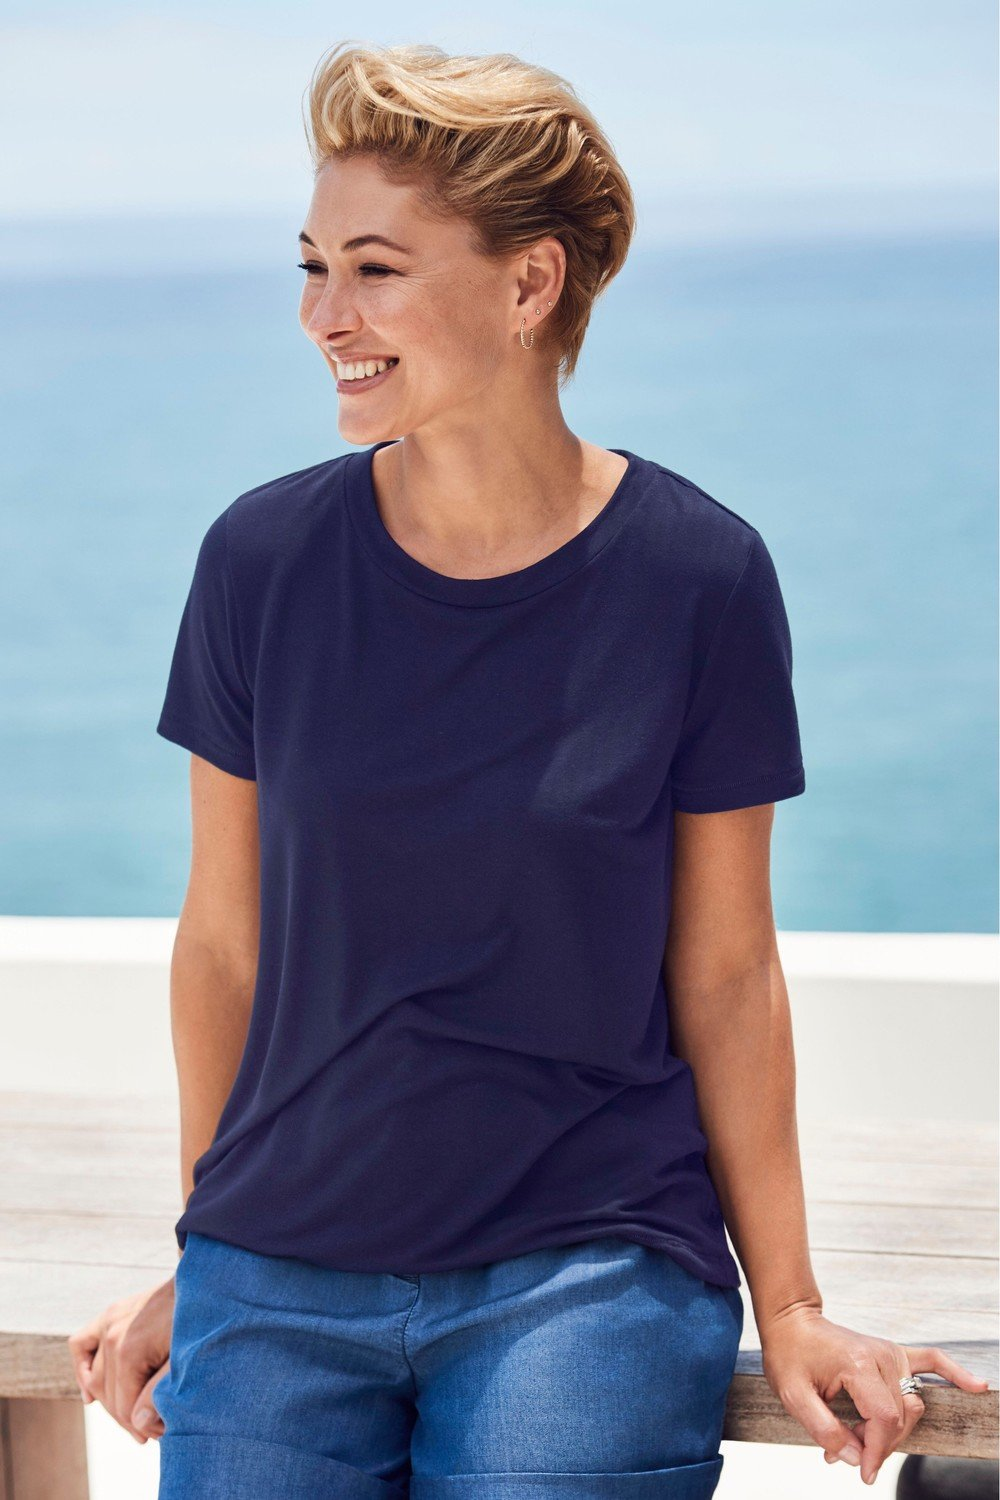 clearance shop best sellers choose genuine Next Emma Willis Basic T-Shirt